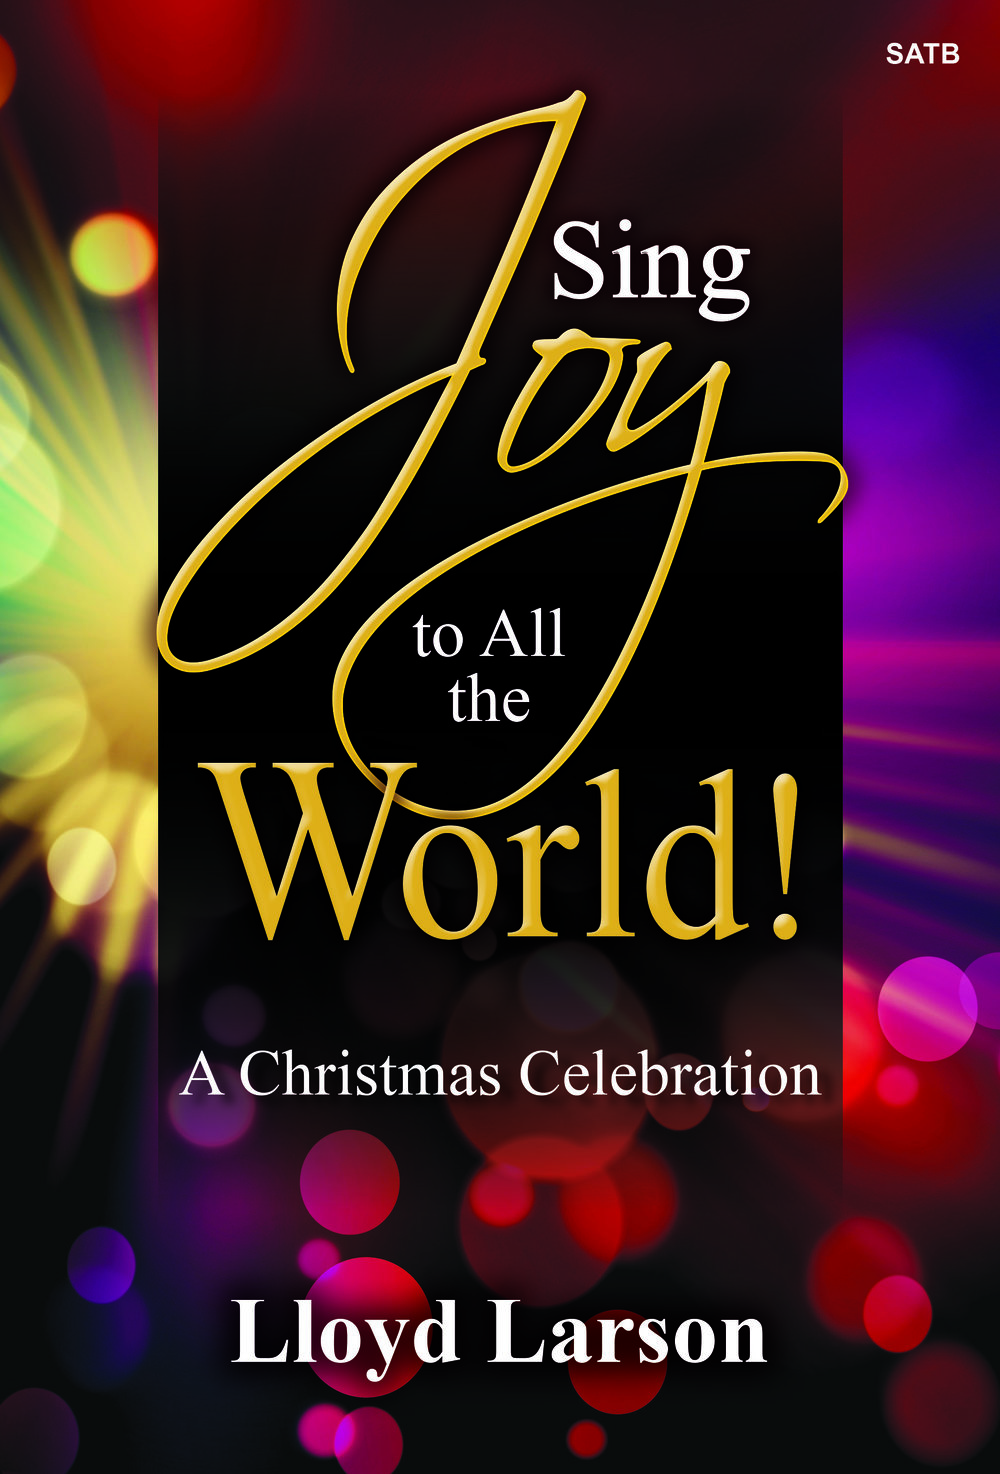 Sing_Joy_to_All_the_World_Complete_Cover.jpg